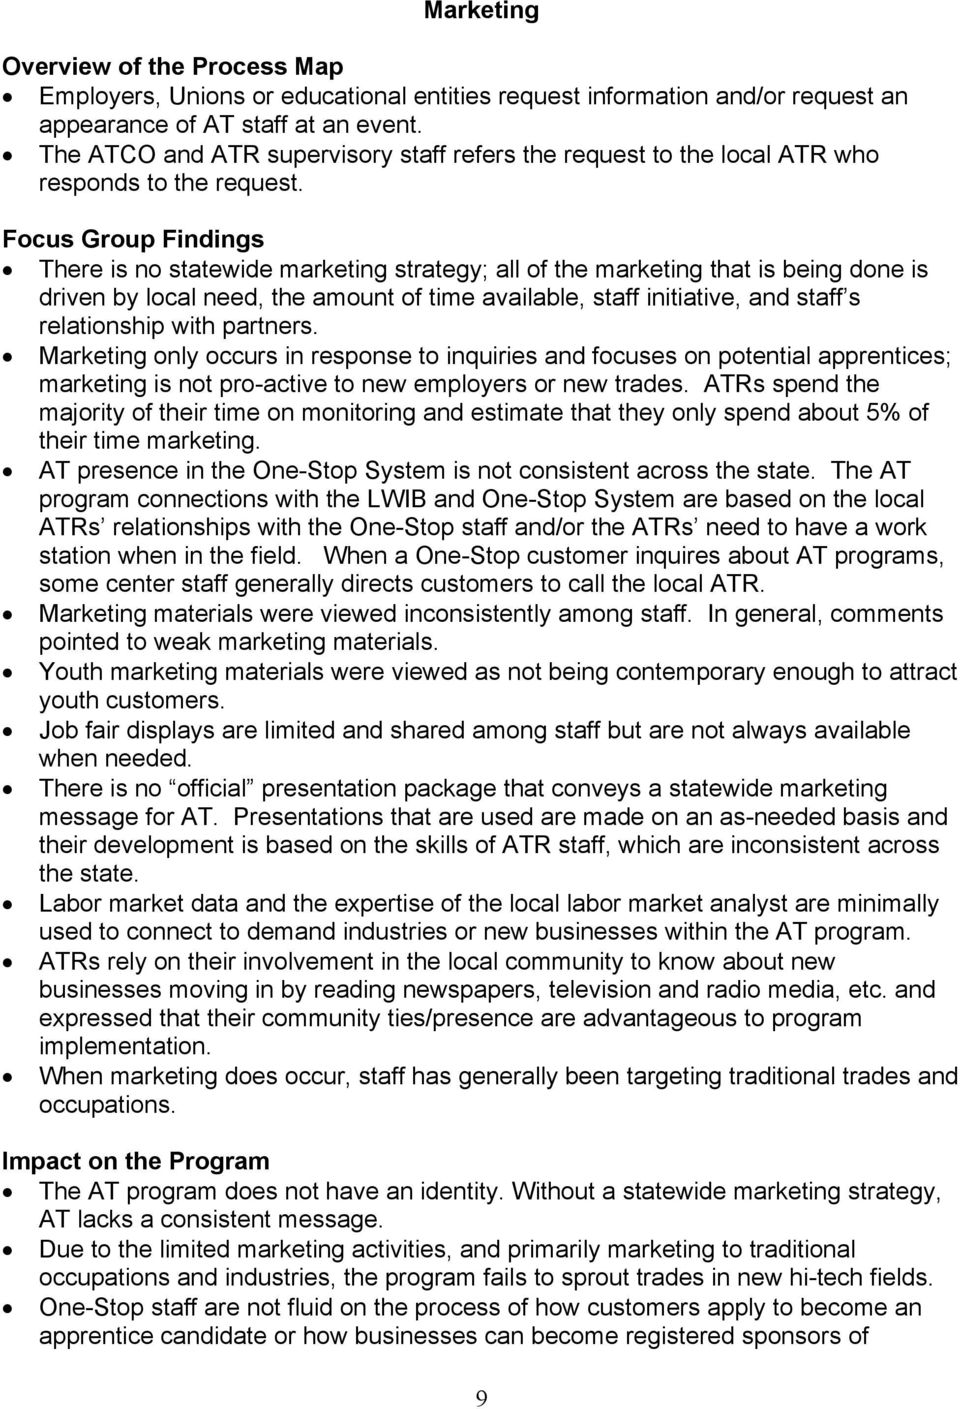 Focus Group Findings There is no statewide marketing strategy; all of the marketing that is being done is driven by local need, the amount of time available, staff initiative, and staff s